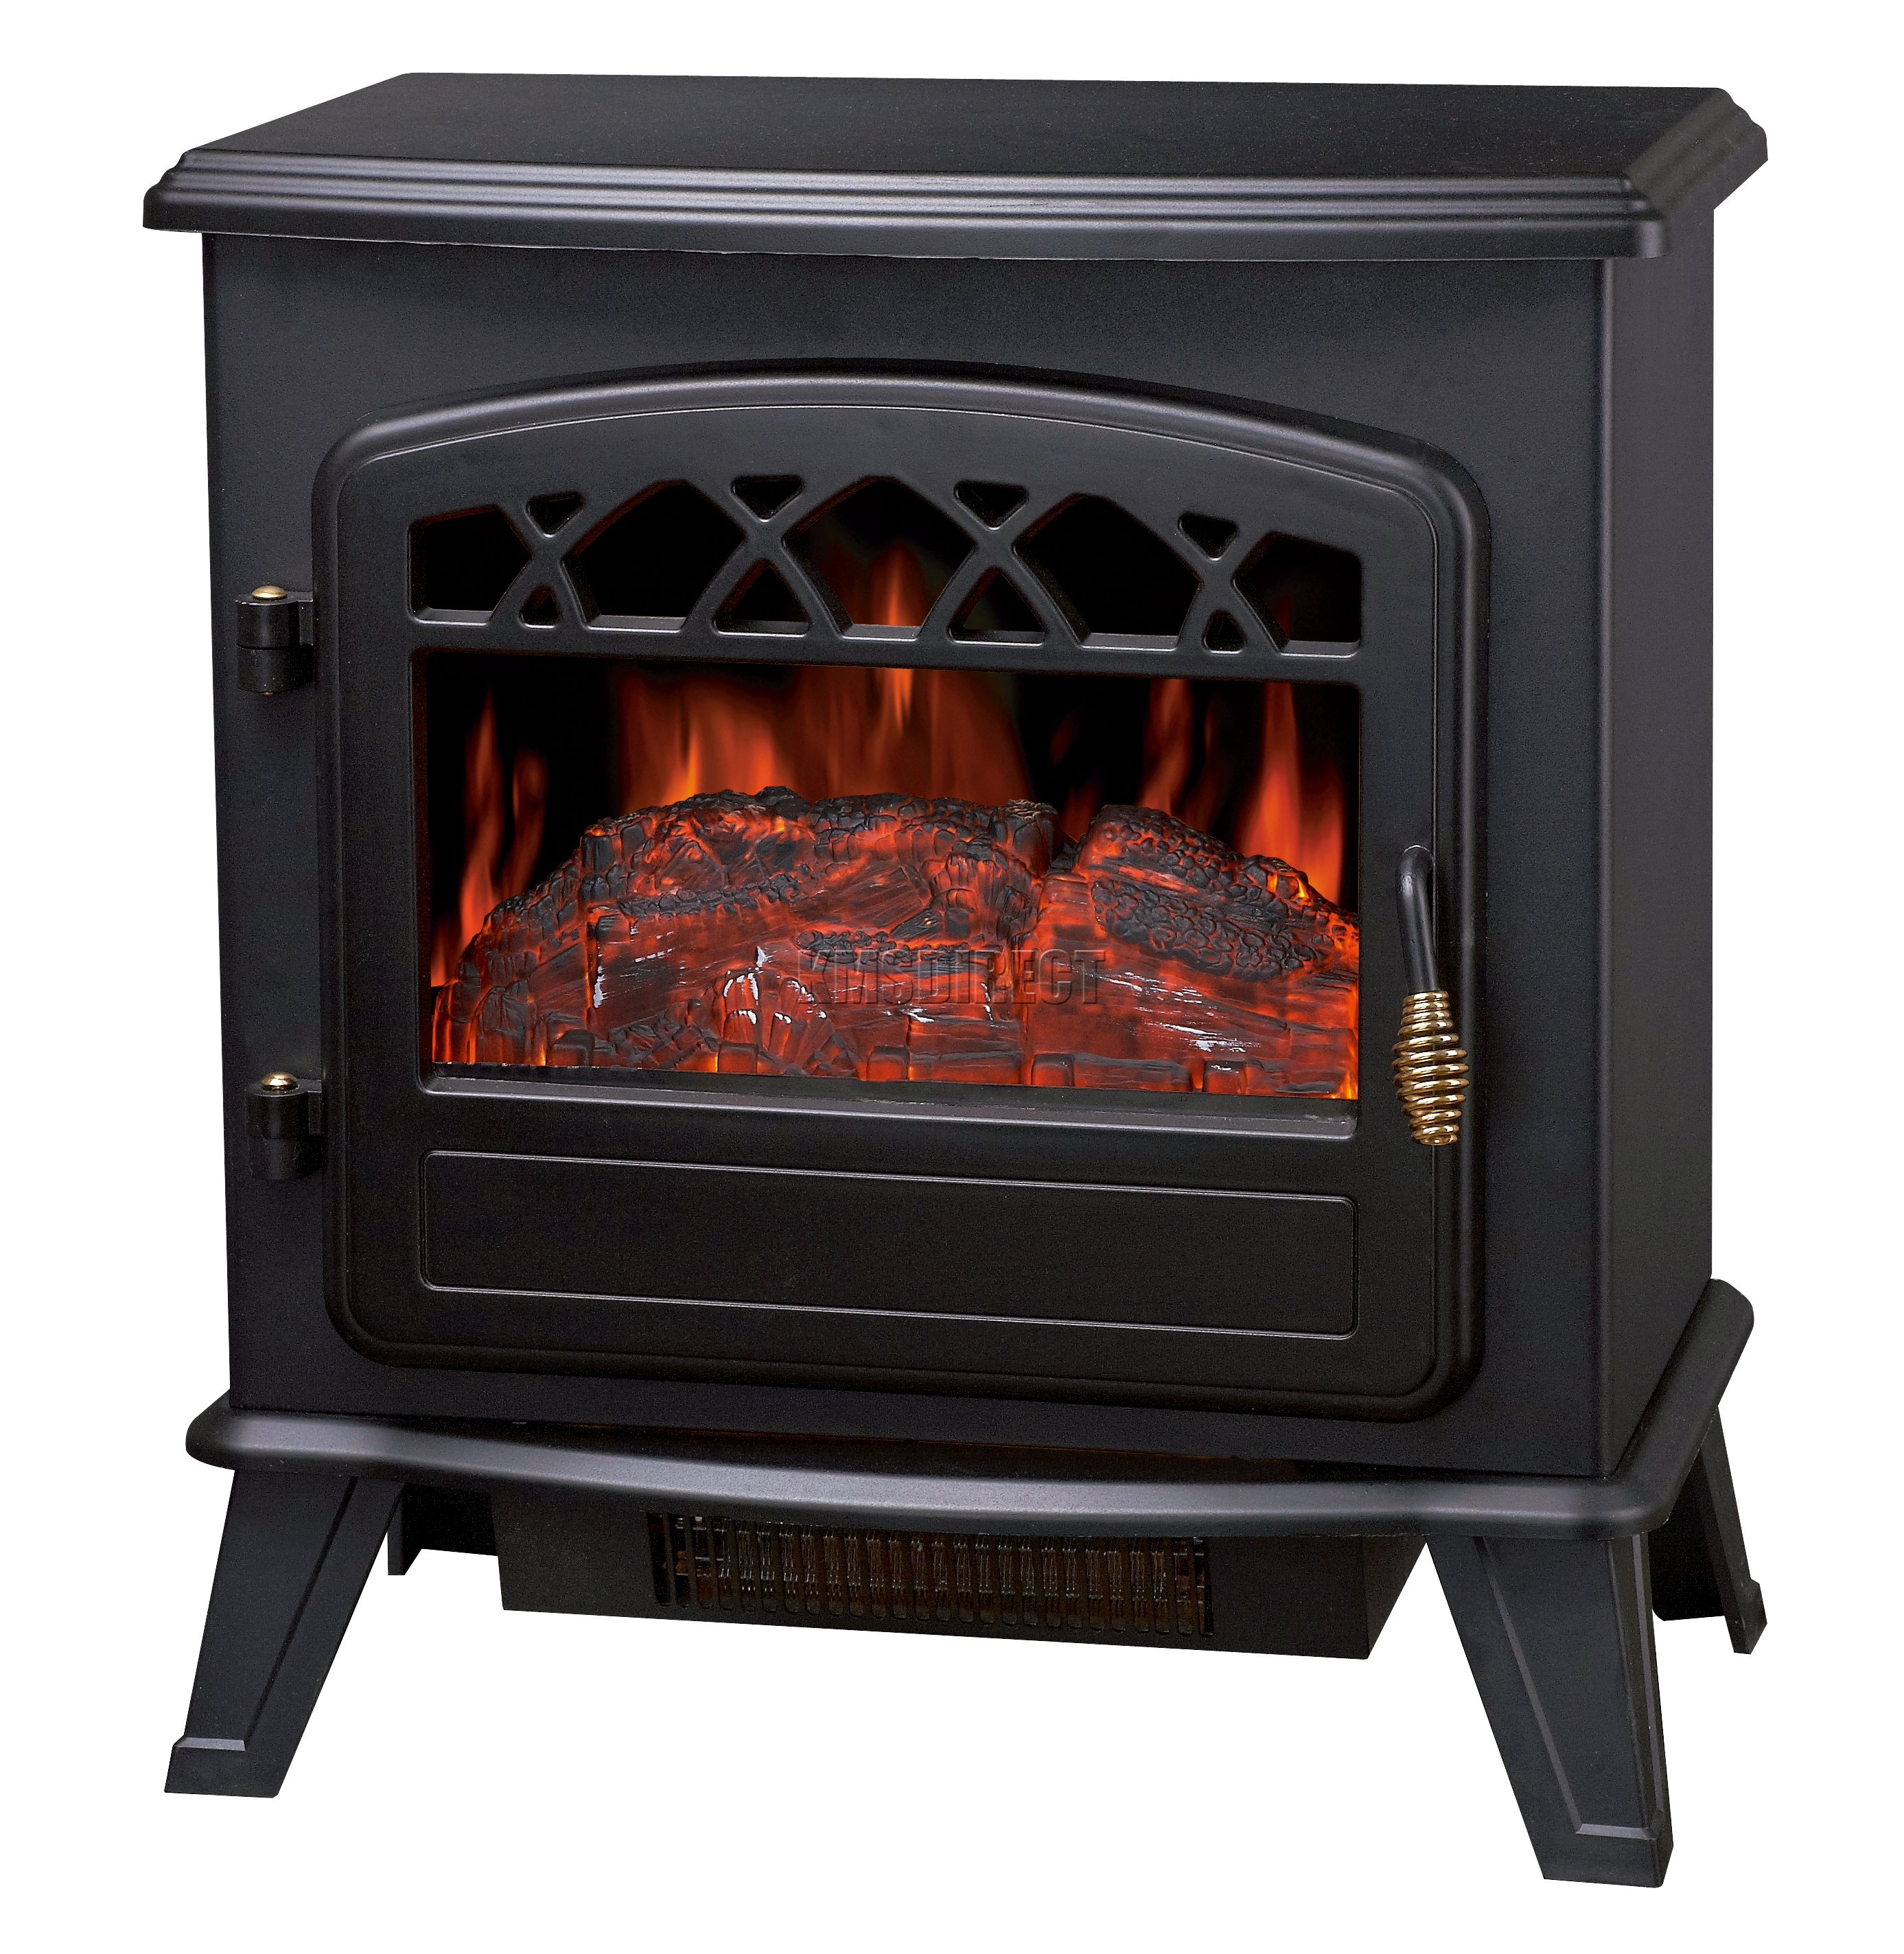 nouveau 1850w log burning effet flamme po le chemin e feu lectrique chauffage debout ebay. Black Bedroom Furniture Sets. Home Design Ideas